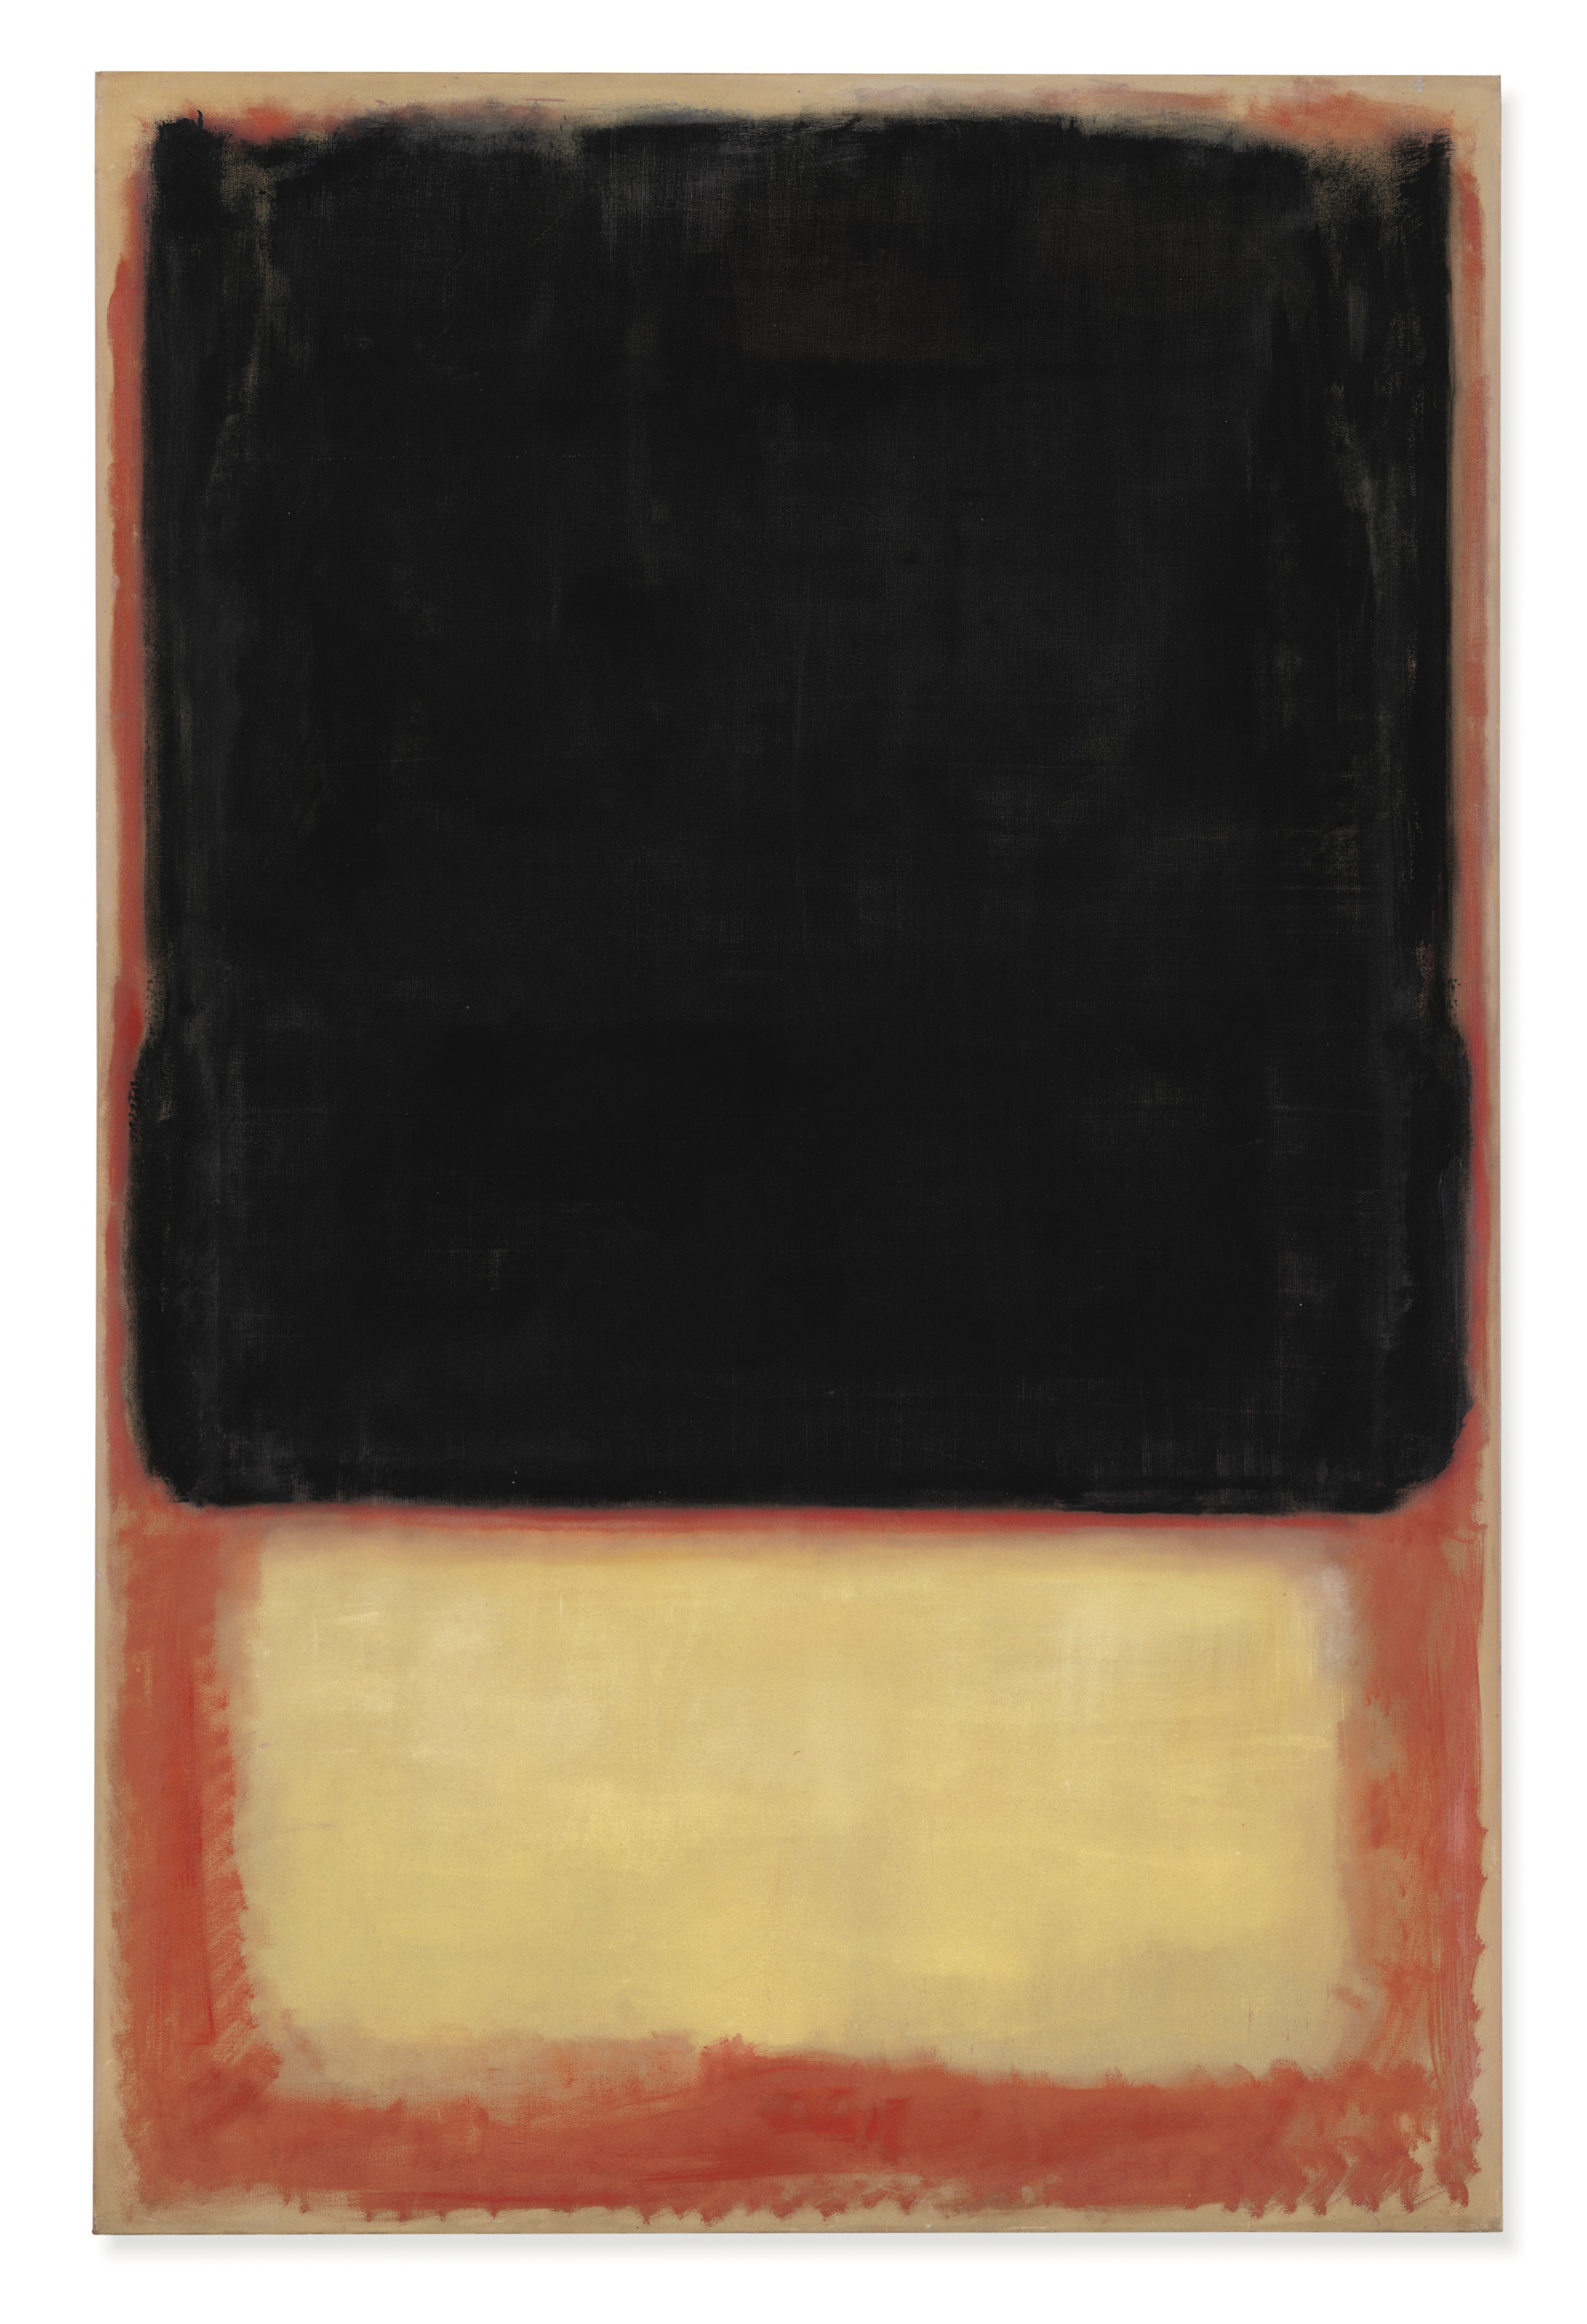 b2c5513e0da  397 Million Christie s Contemporary Sale Brings Two-Week Auction Total to  over  2.7 Billion - Artsy